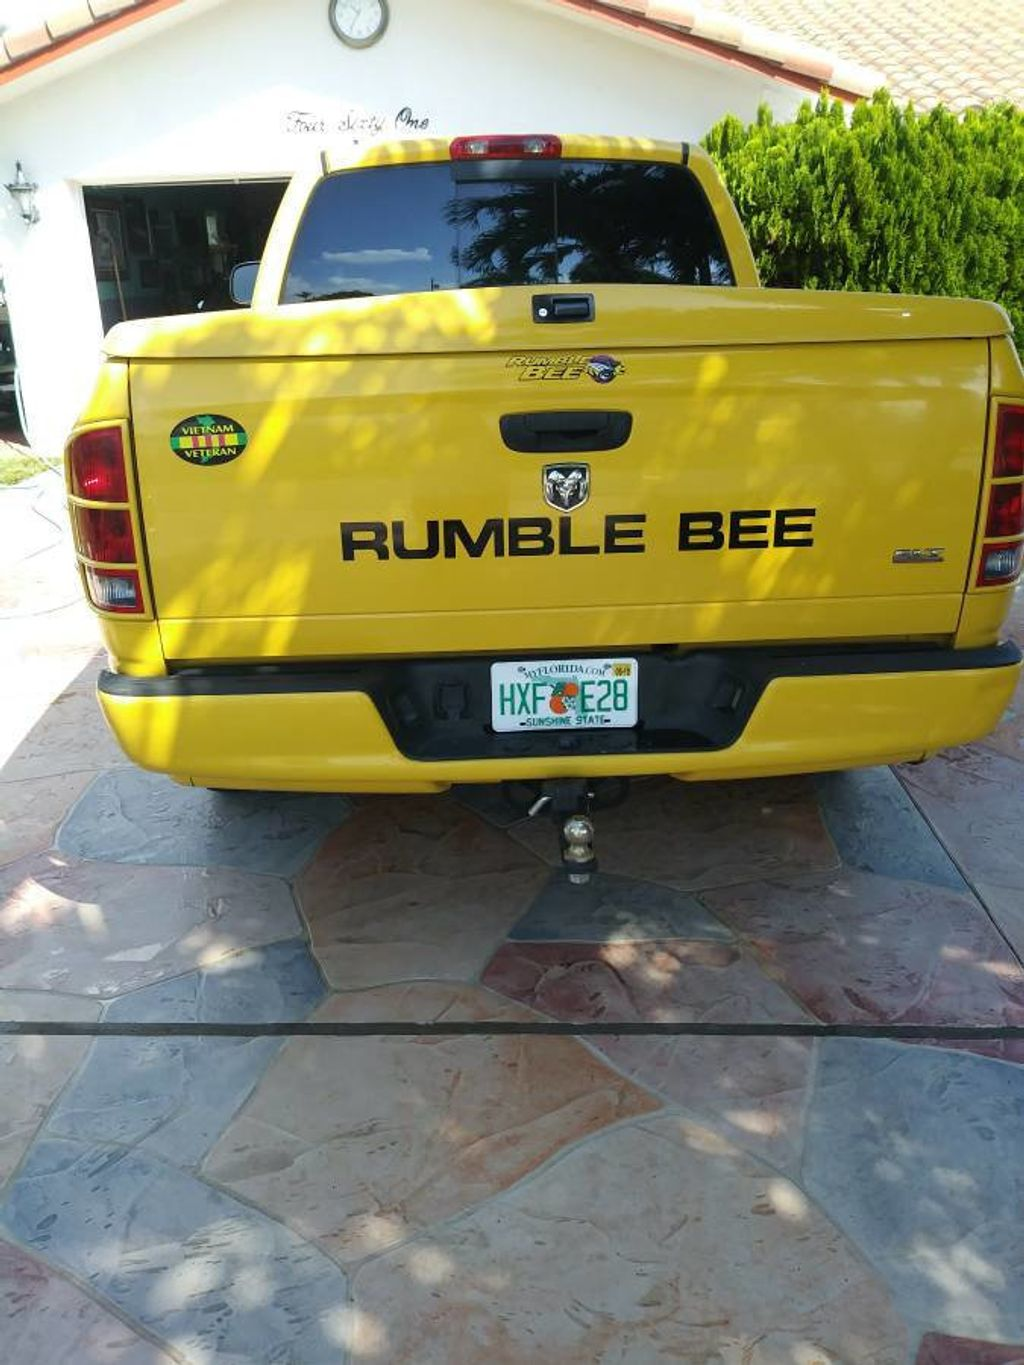 2005 Dodge Ram 1500 Rumble Bee Limited Edition For Sale - 17386933 - 2